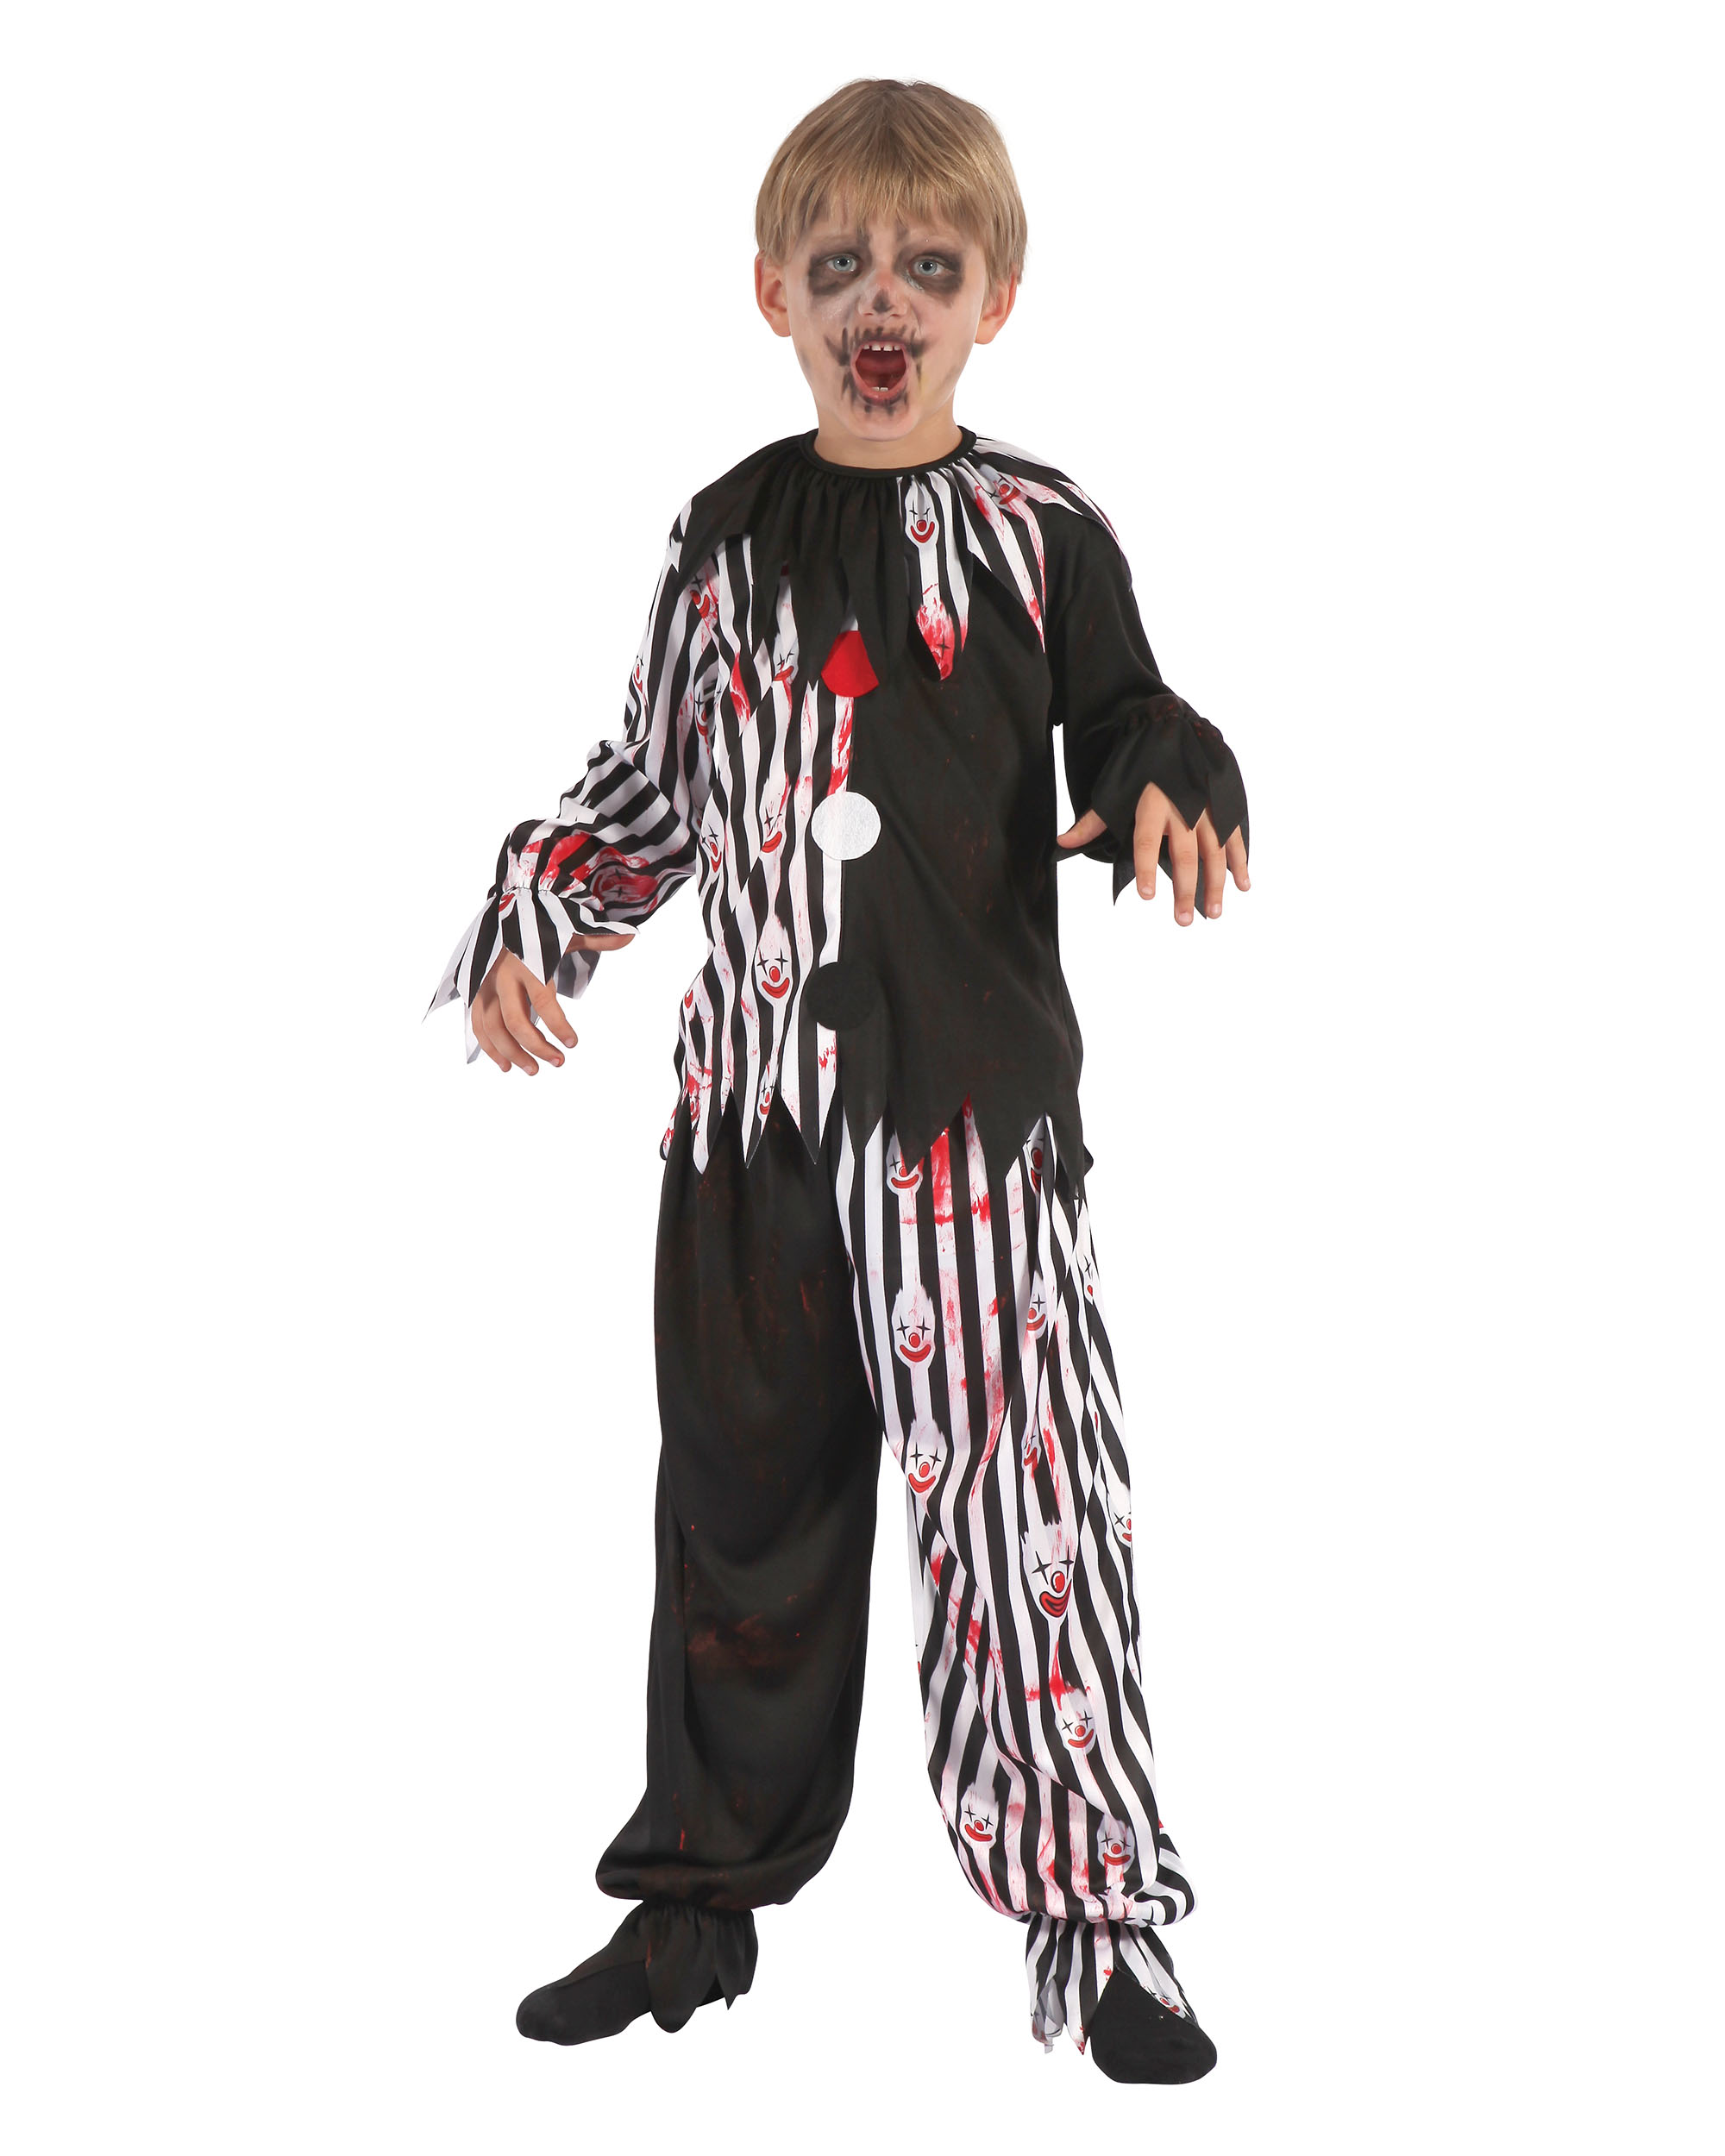 Bloody Harlequin clown